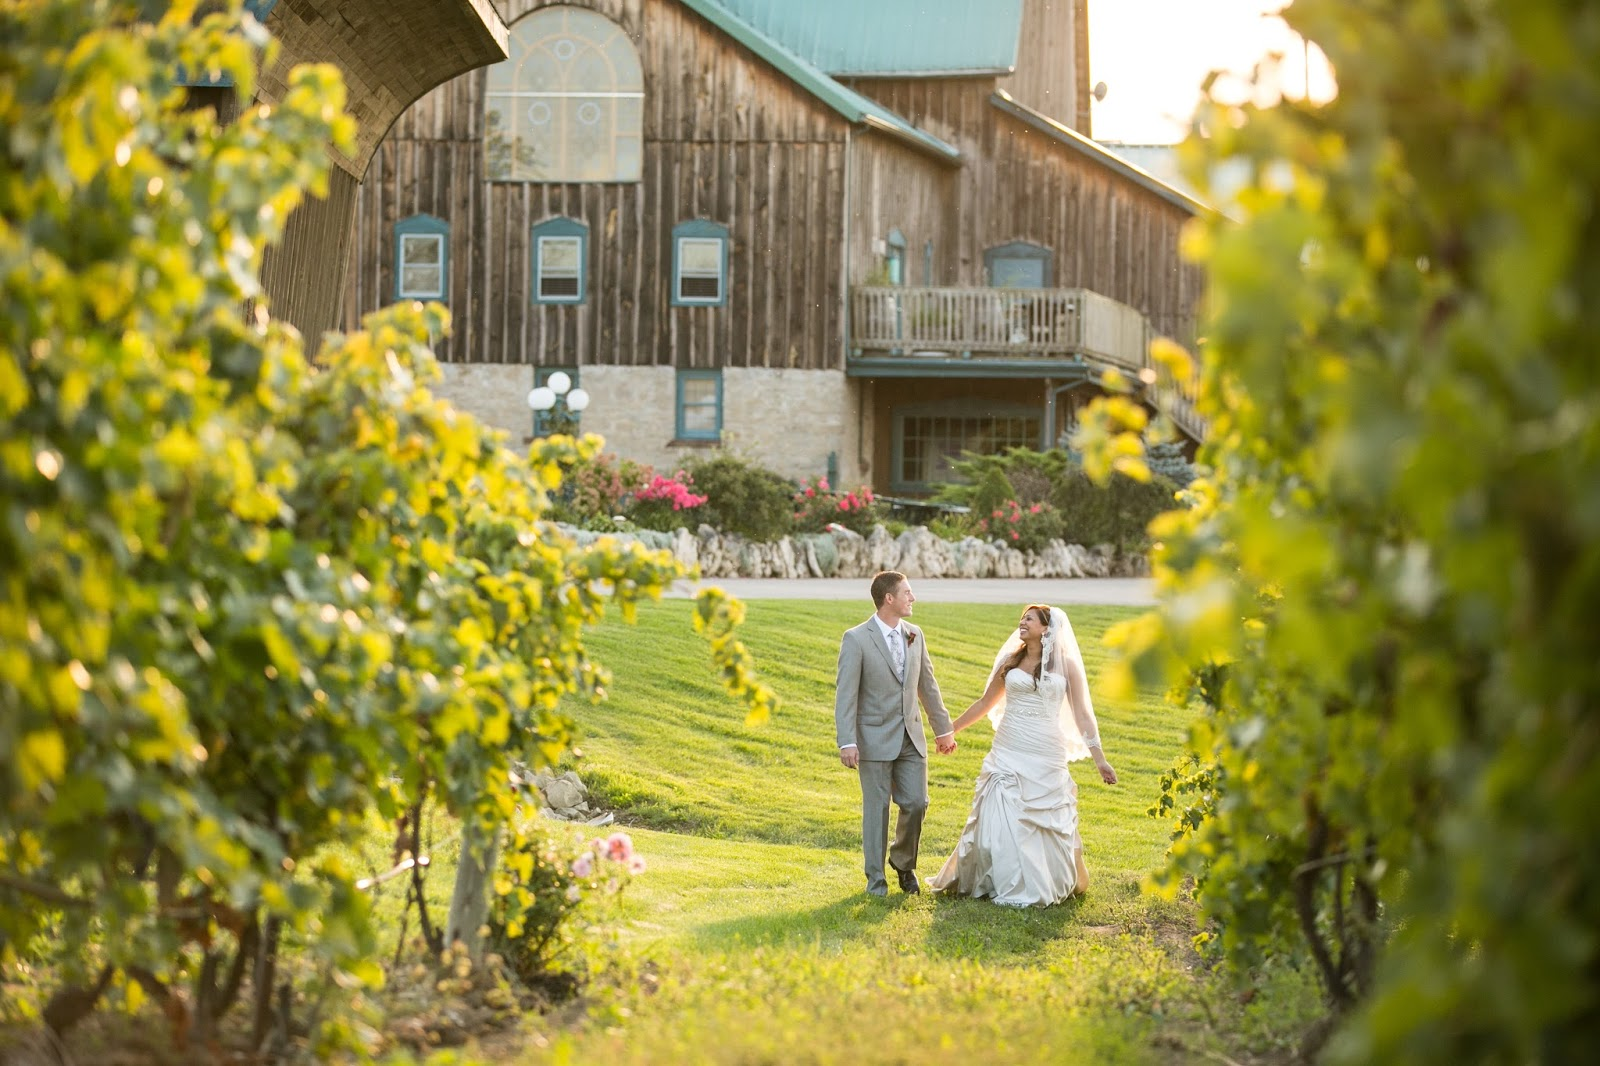 Vineyard wedding inspiration // the-lifestyle-project.com